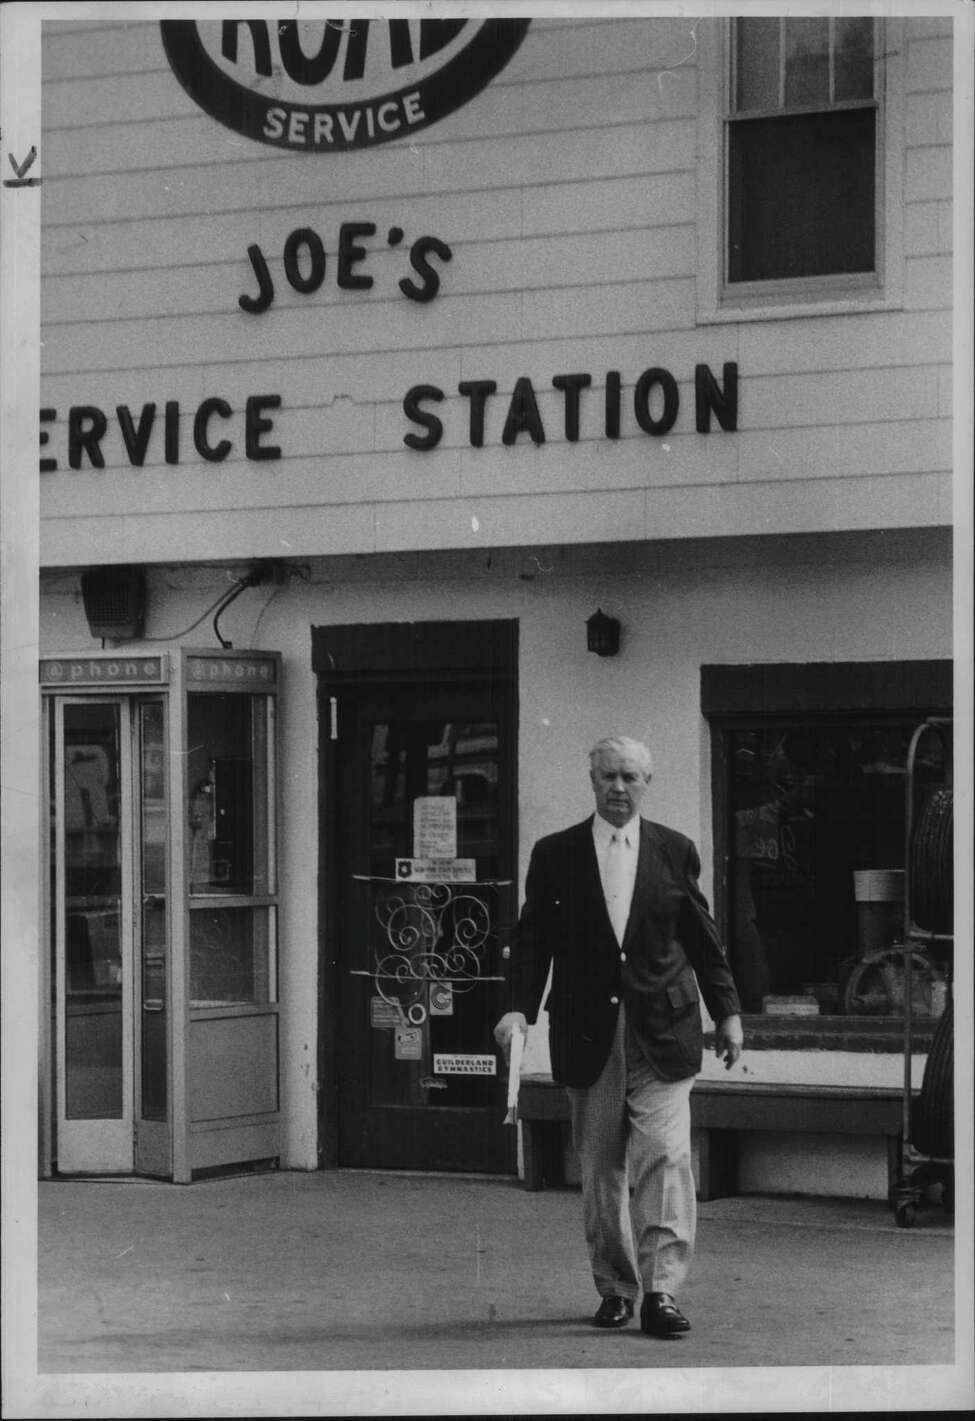 Joe's Service Station, Guilderland, New York _ Kenneth Weafer, Albany County dealer of weight and measures, leaves service station on Route 20 & 146 - Joseph Calabro, owner. June 14, 1979 (Raymond B. Summers/Times Union Archive)